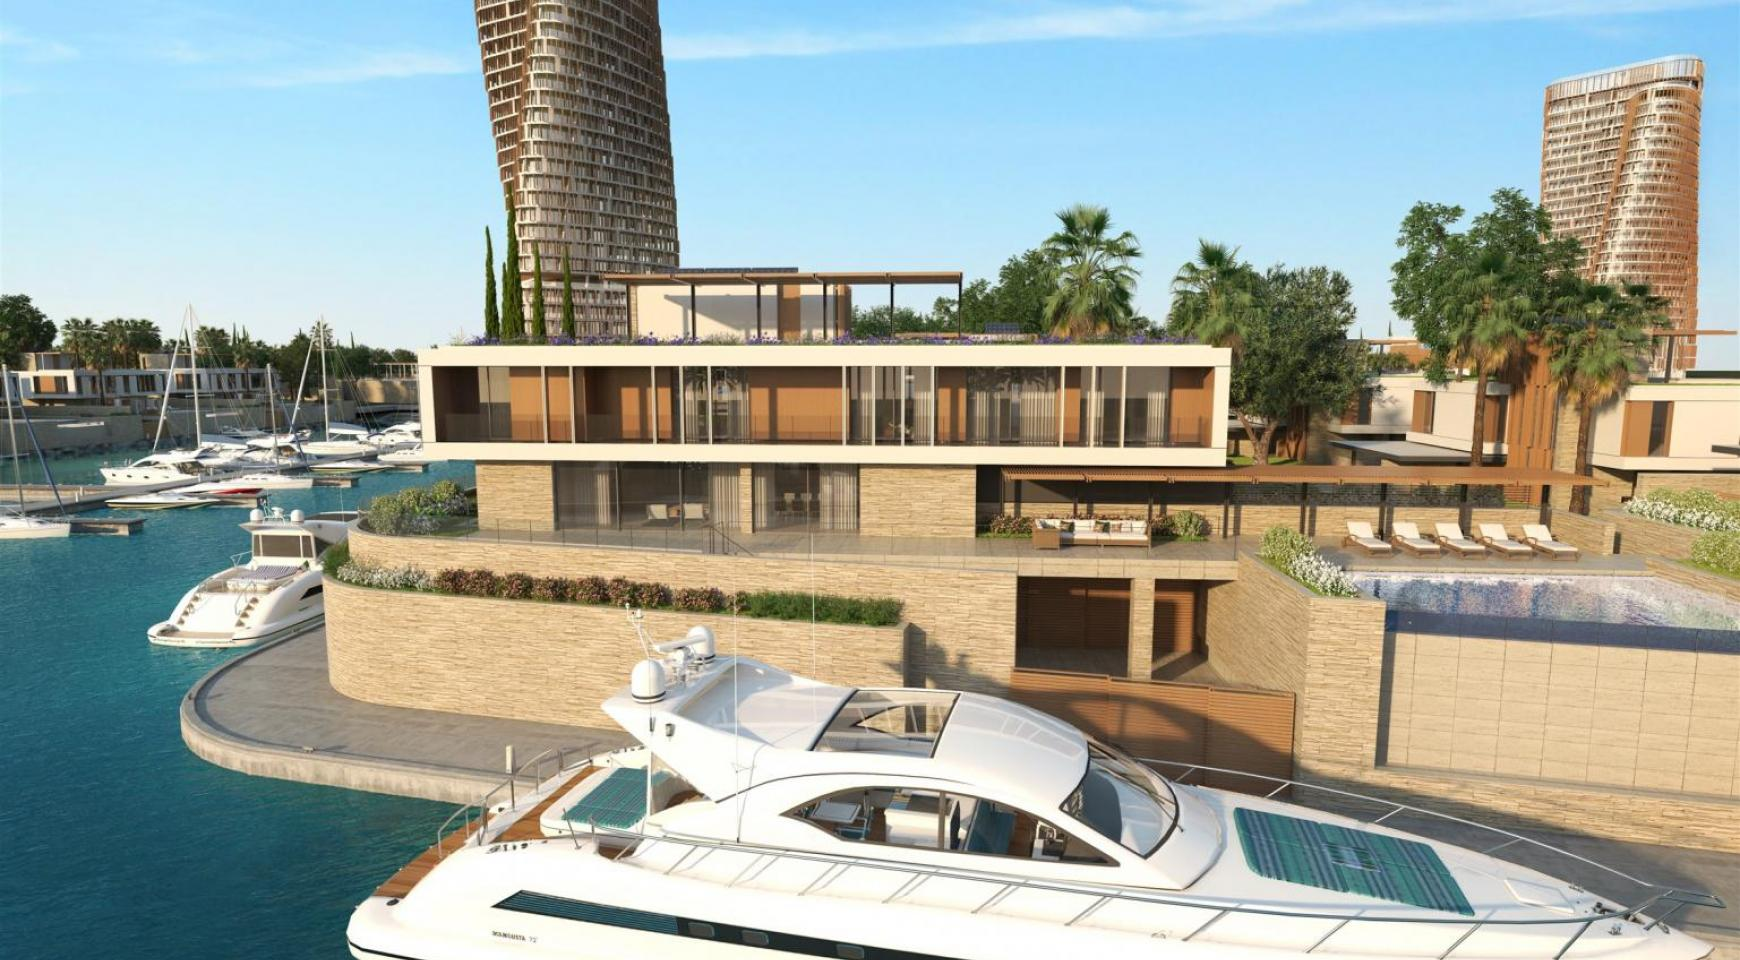 Stunning 4 Bedroom Villa in an Exclusive Project by the Sea - 2